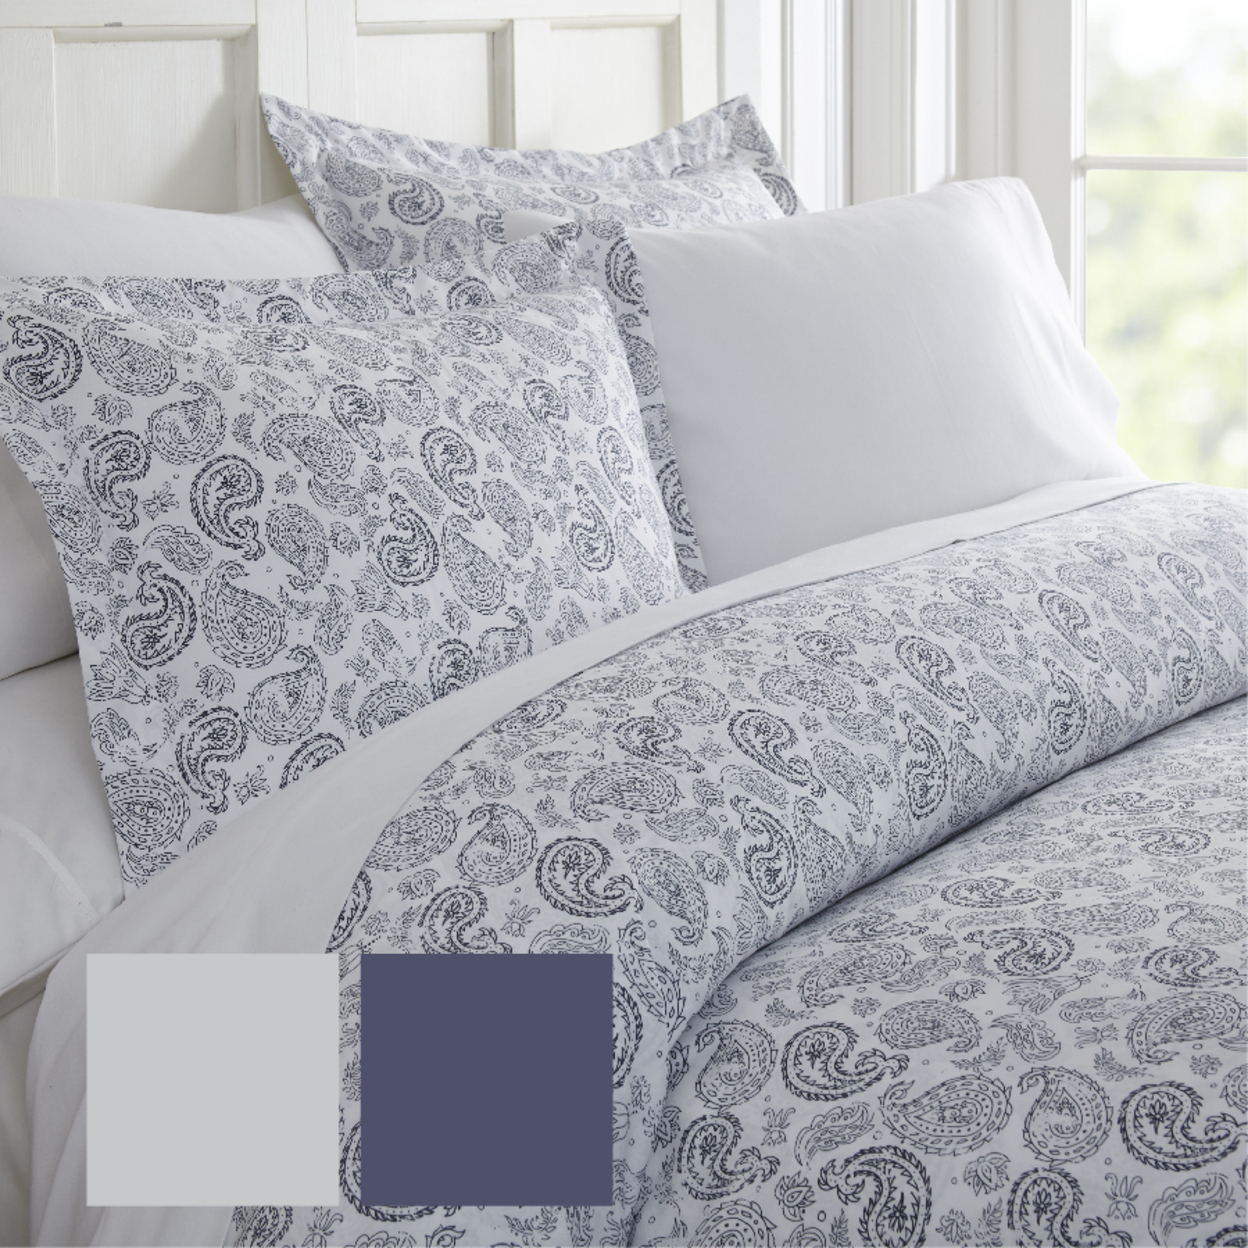 Home Collectiong Premium Ultra Soft 3 Piece Coarse Paisley Print Duvet Cover Set California King/king, Light Gray